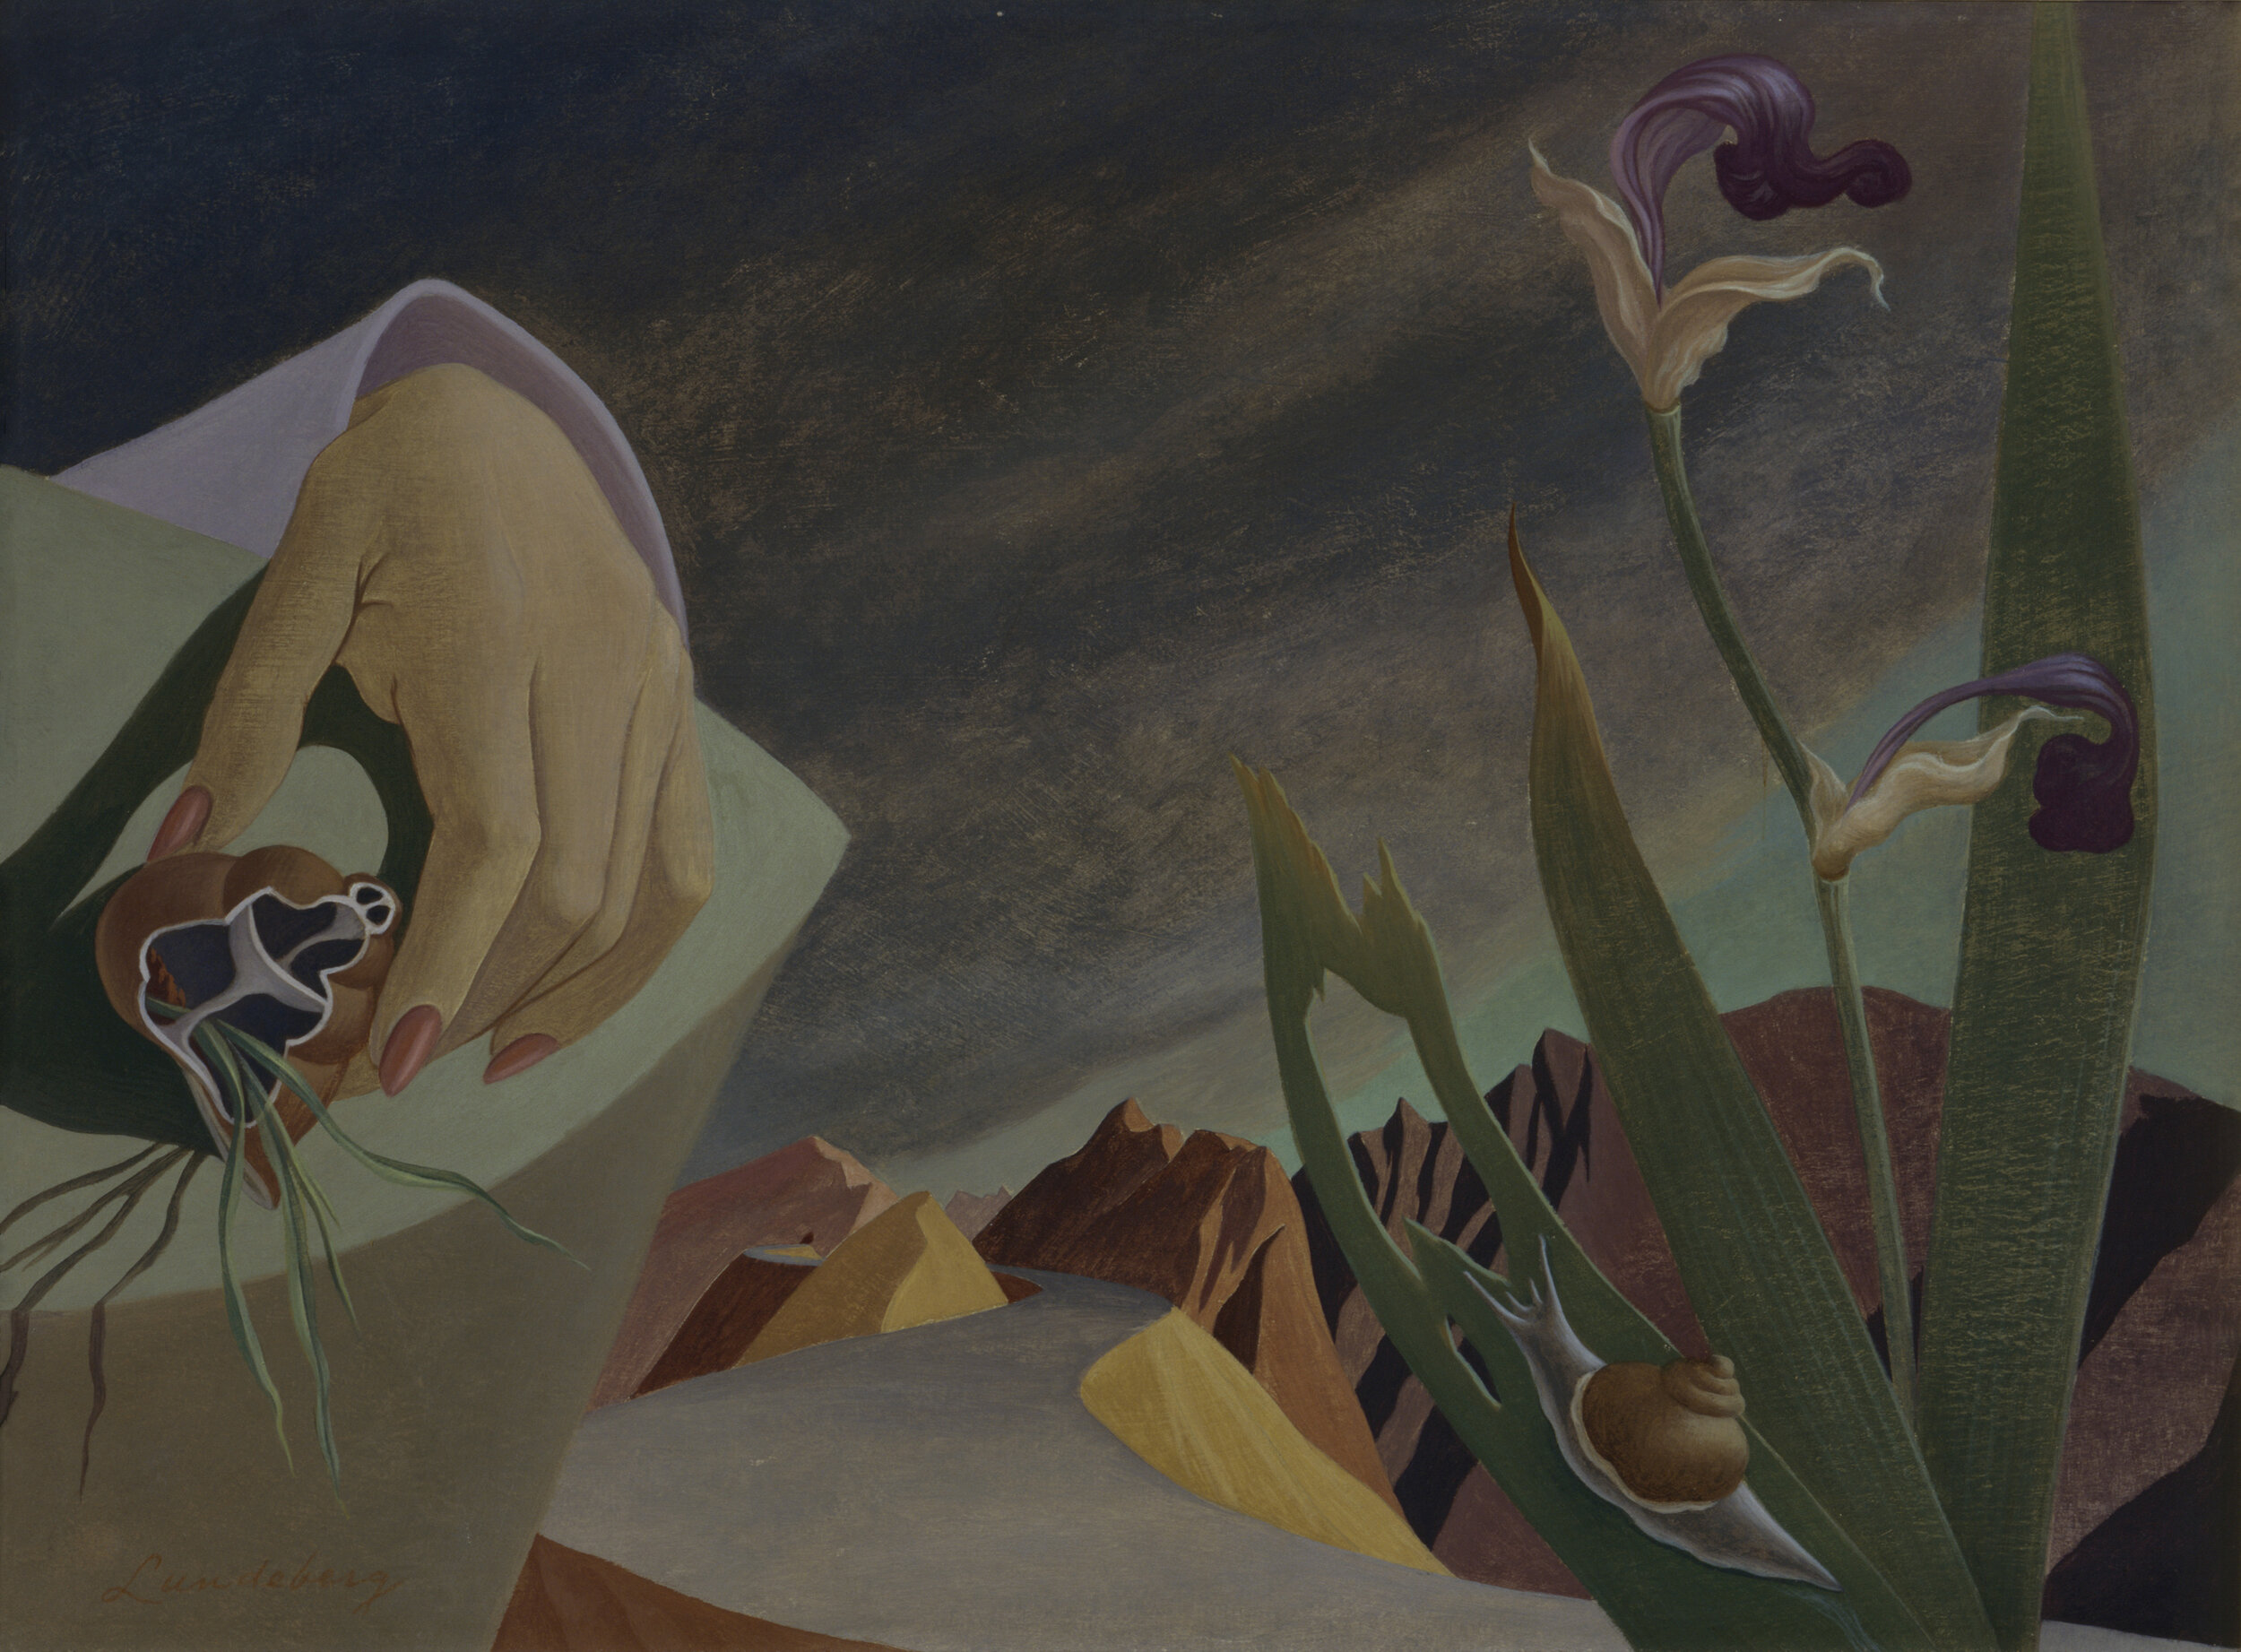 Poetic Justice,  1945    oil on cardboard   13 x 17.5 inches; 33.02 x 44.45 centimeters  Oakland Museum of California